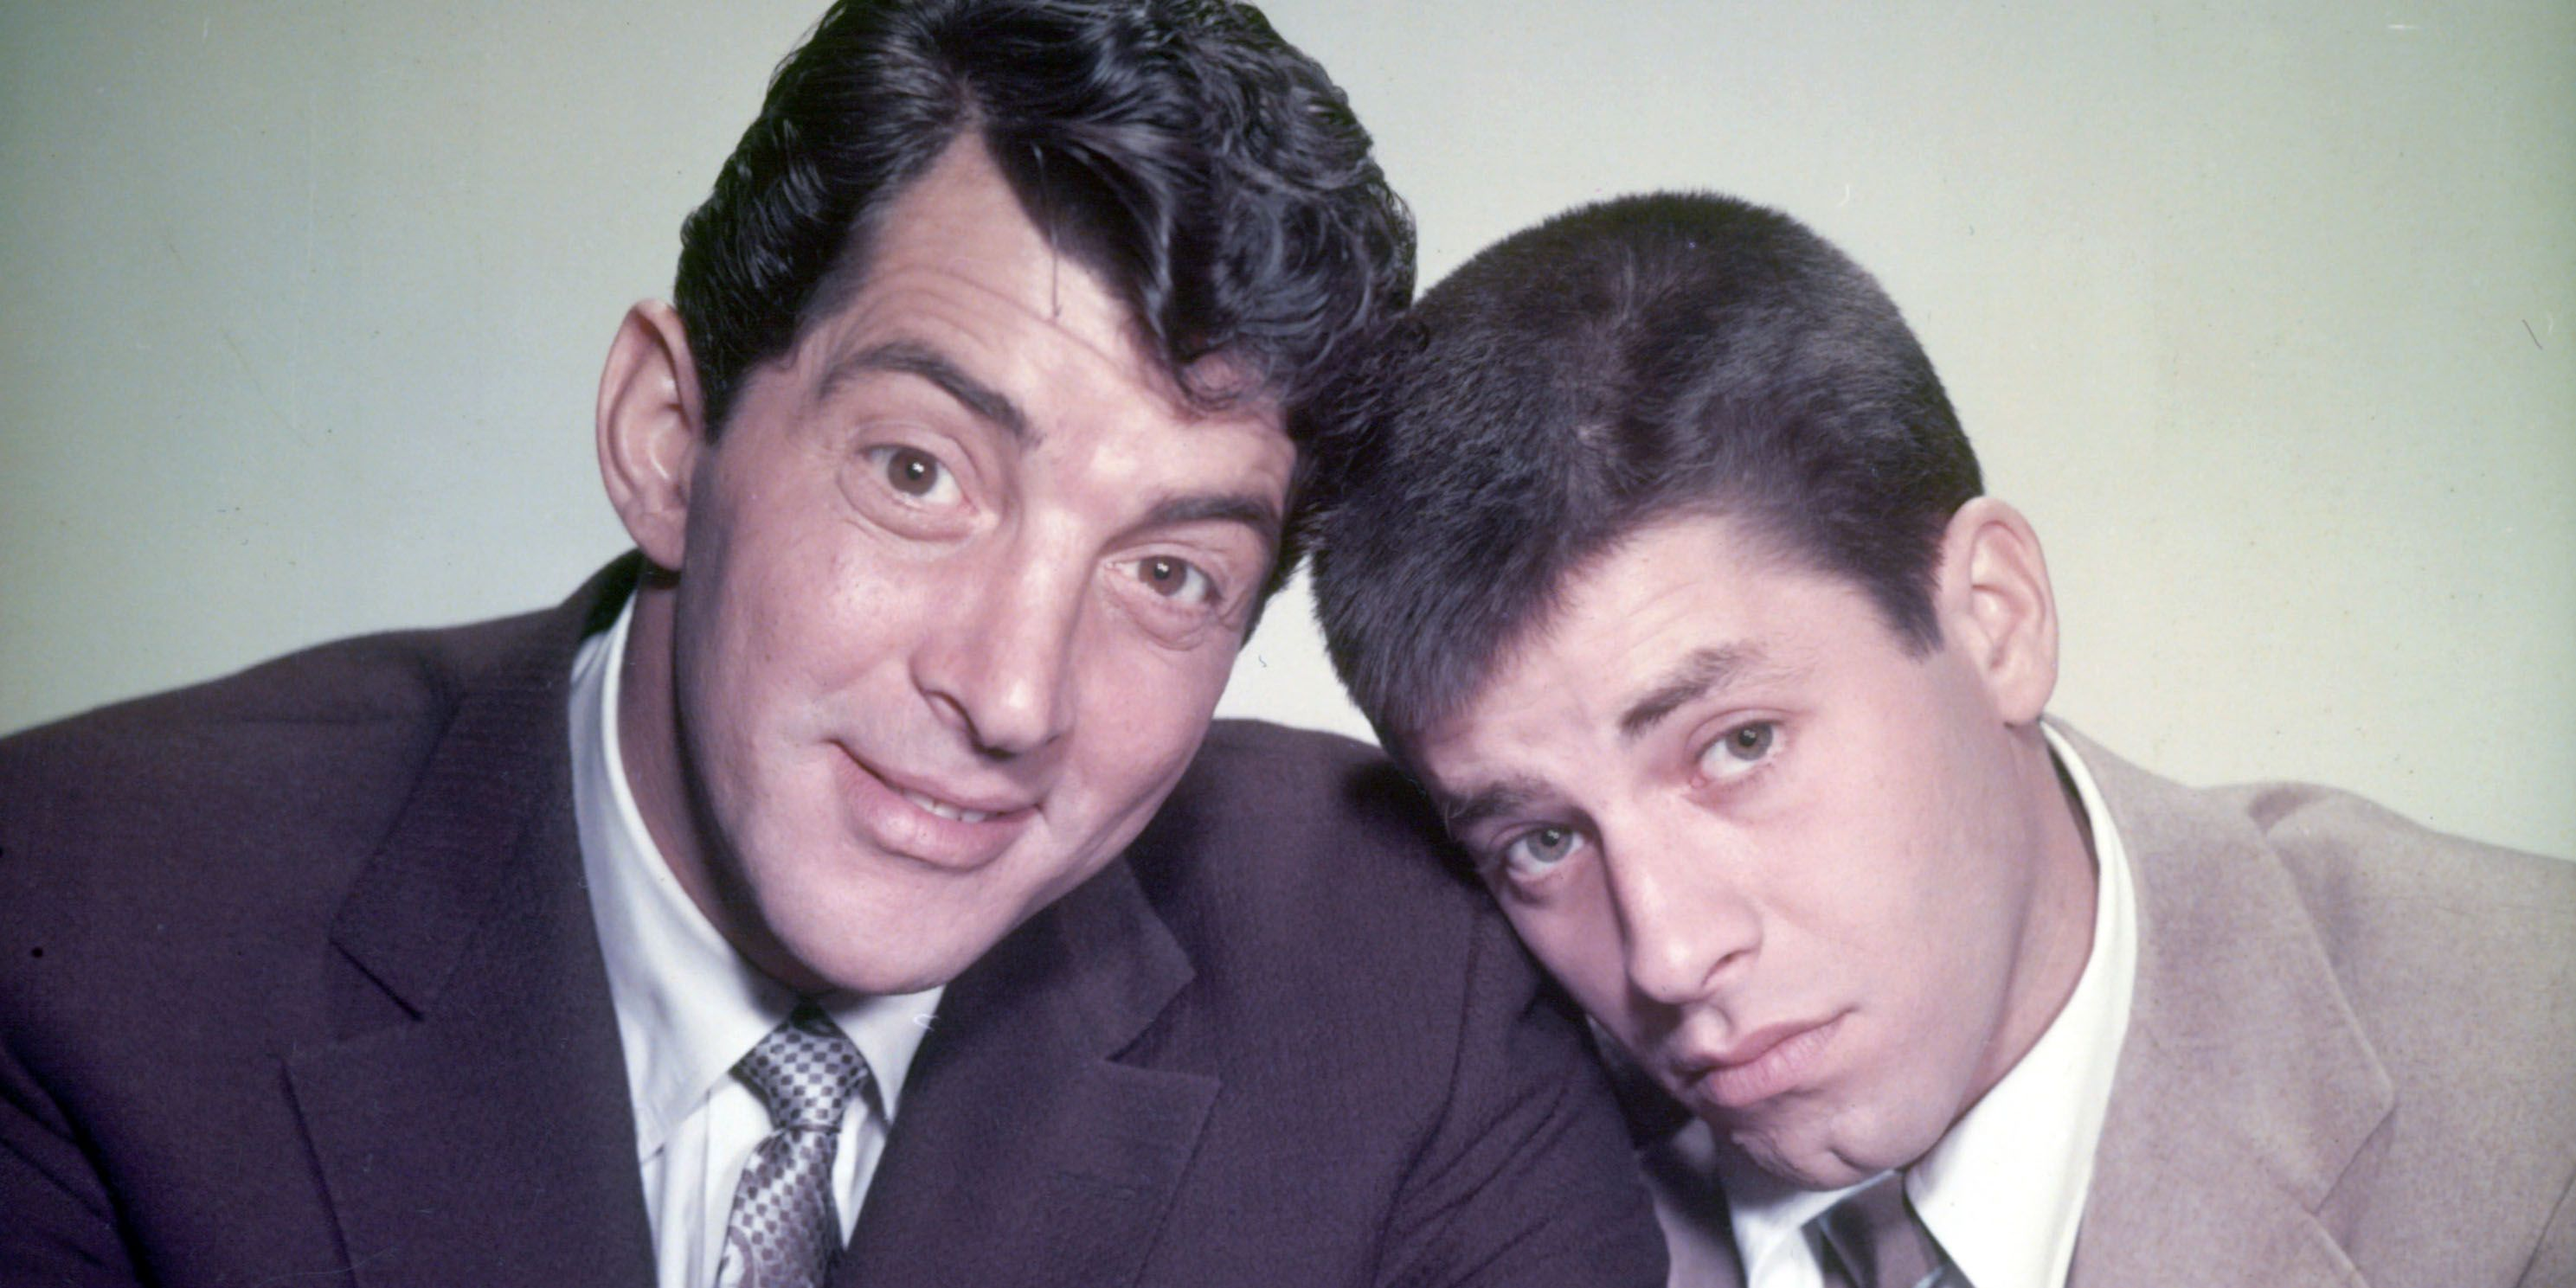 Jerry Lewis and Dean Martin's 20-Year Feud - Comedy Duo Jerry ...